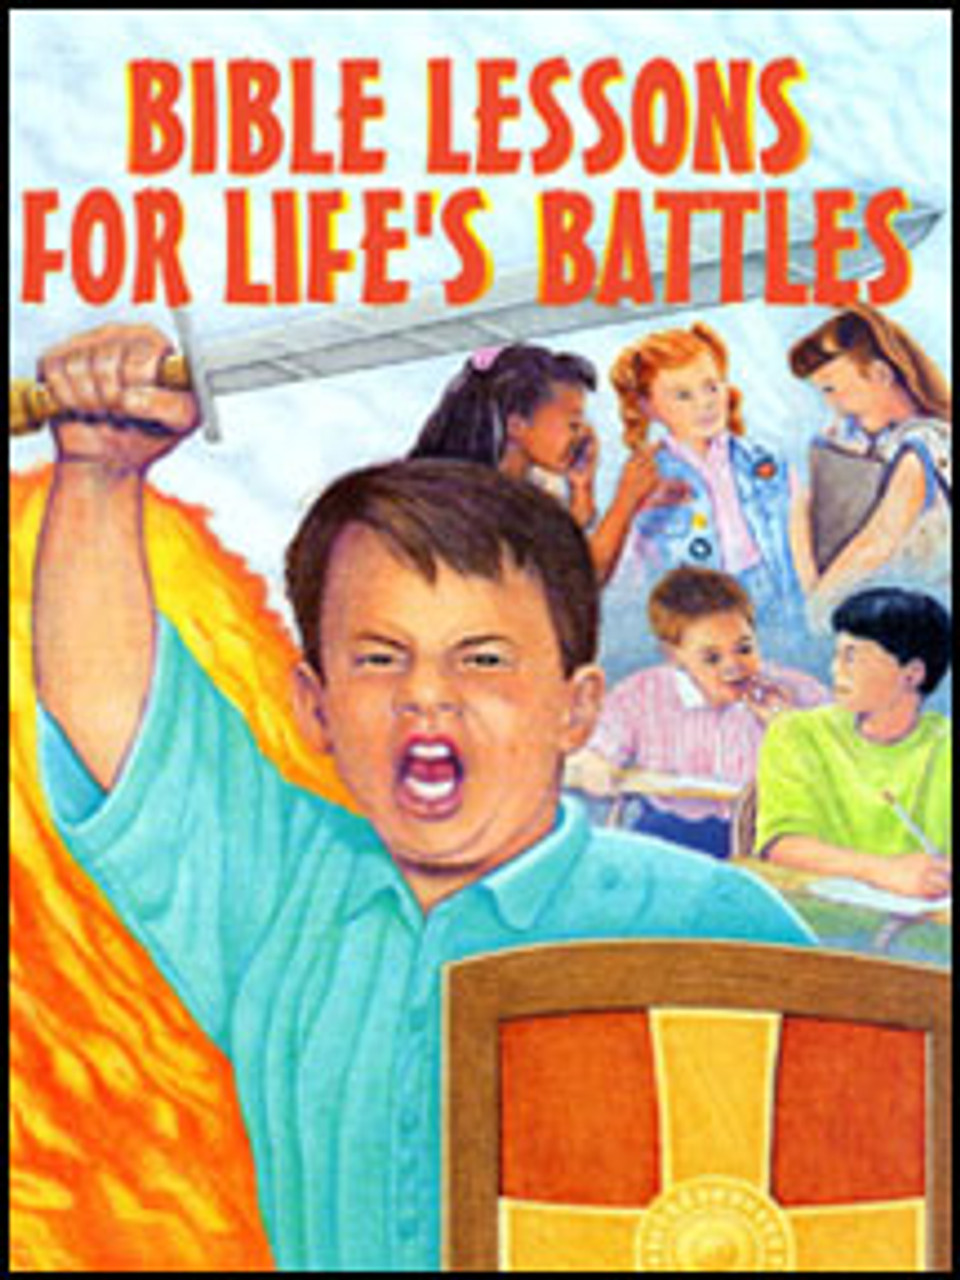 Bible Lessons for Life's Battles (visuals w/text)